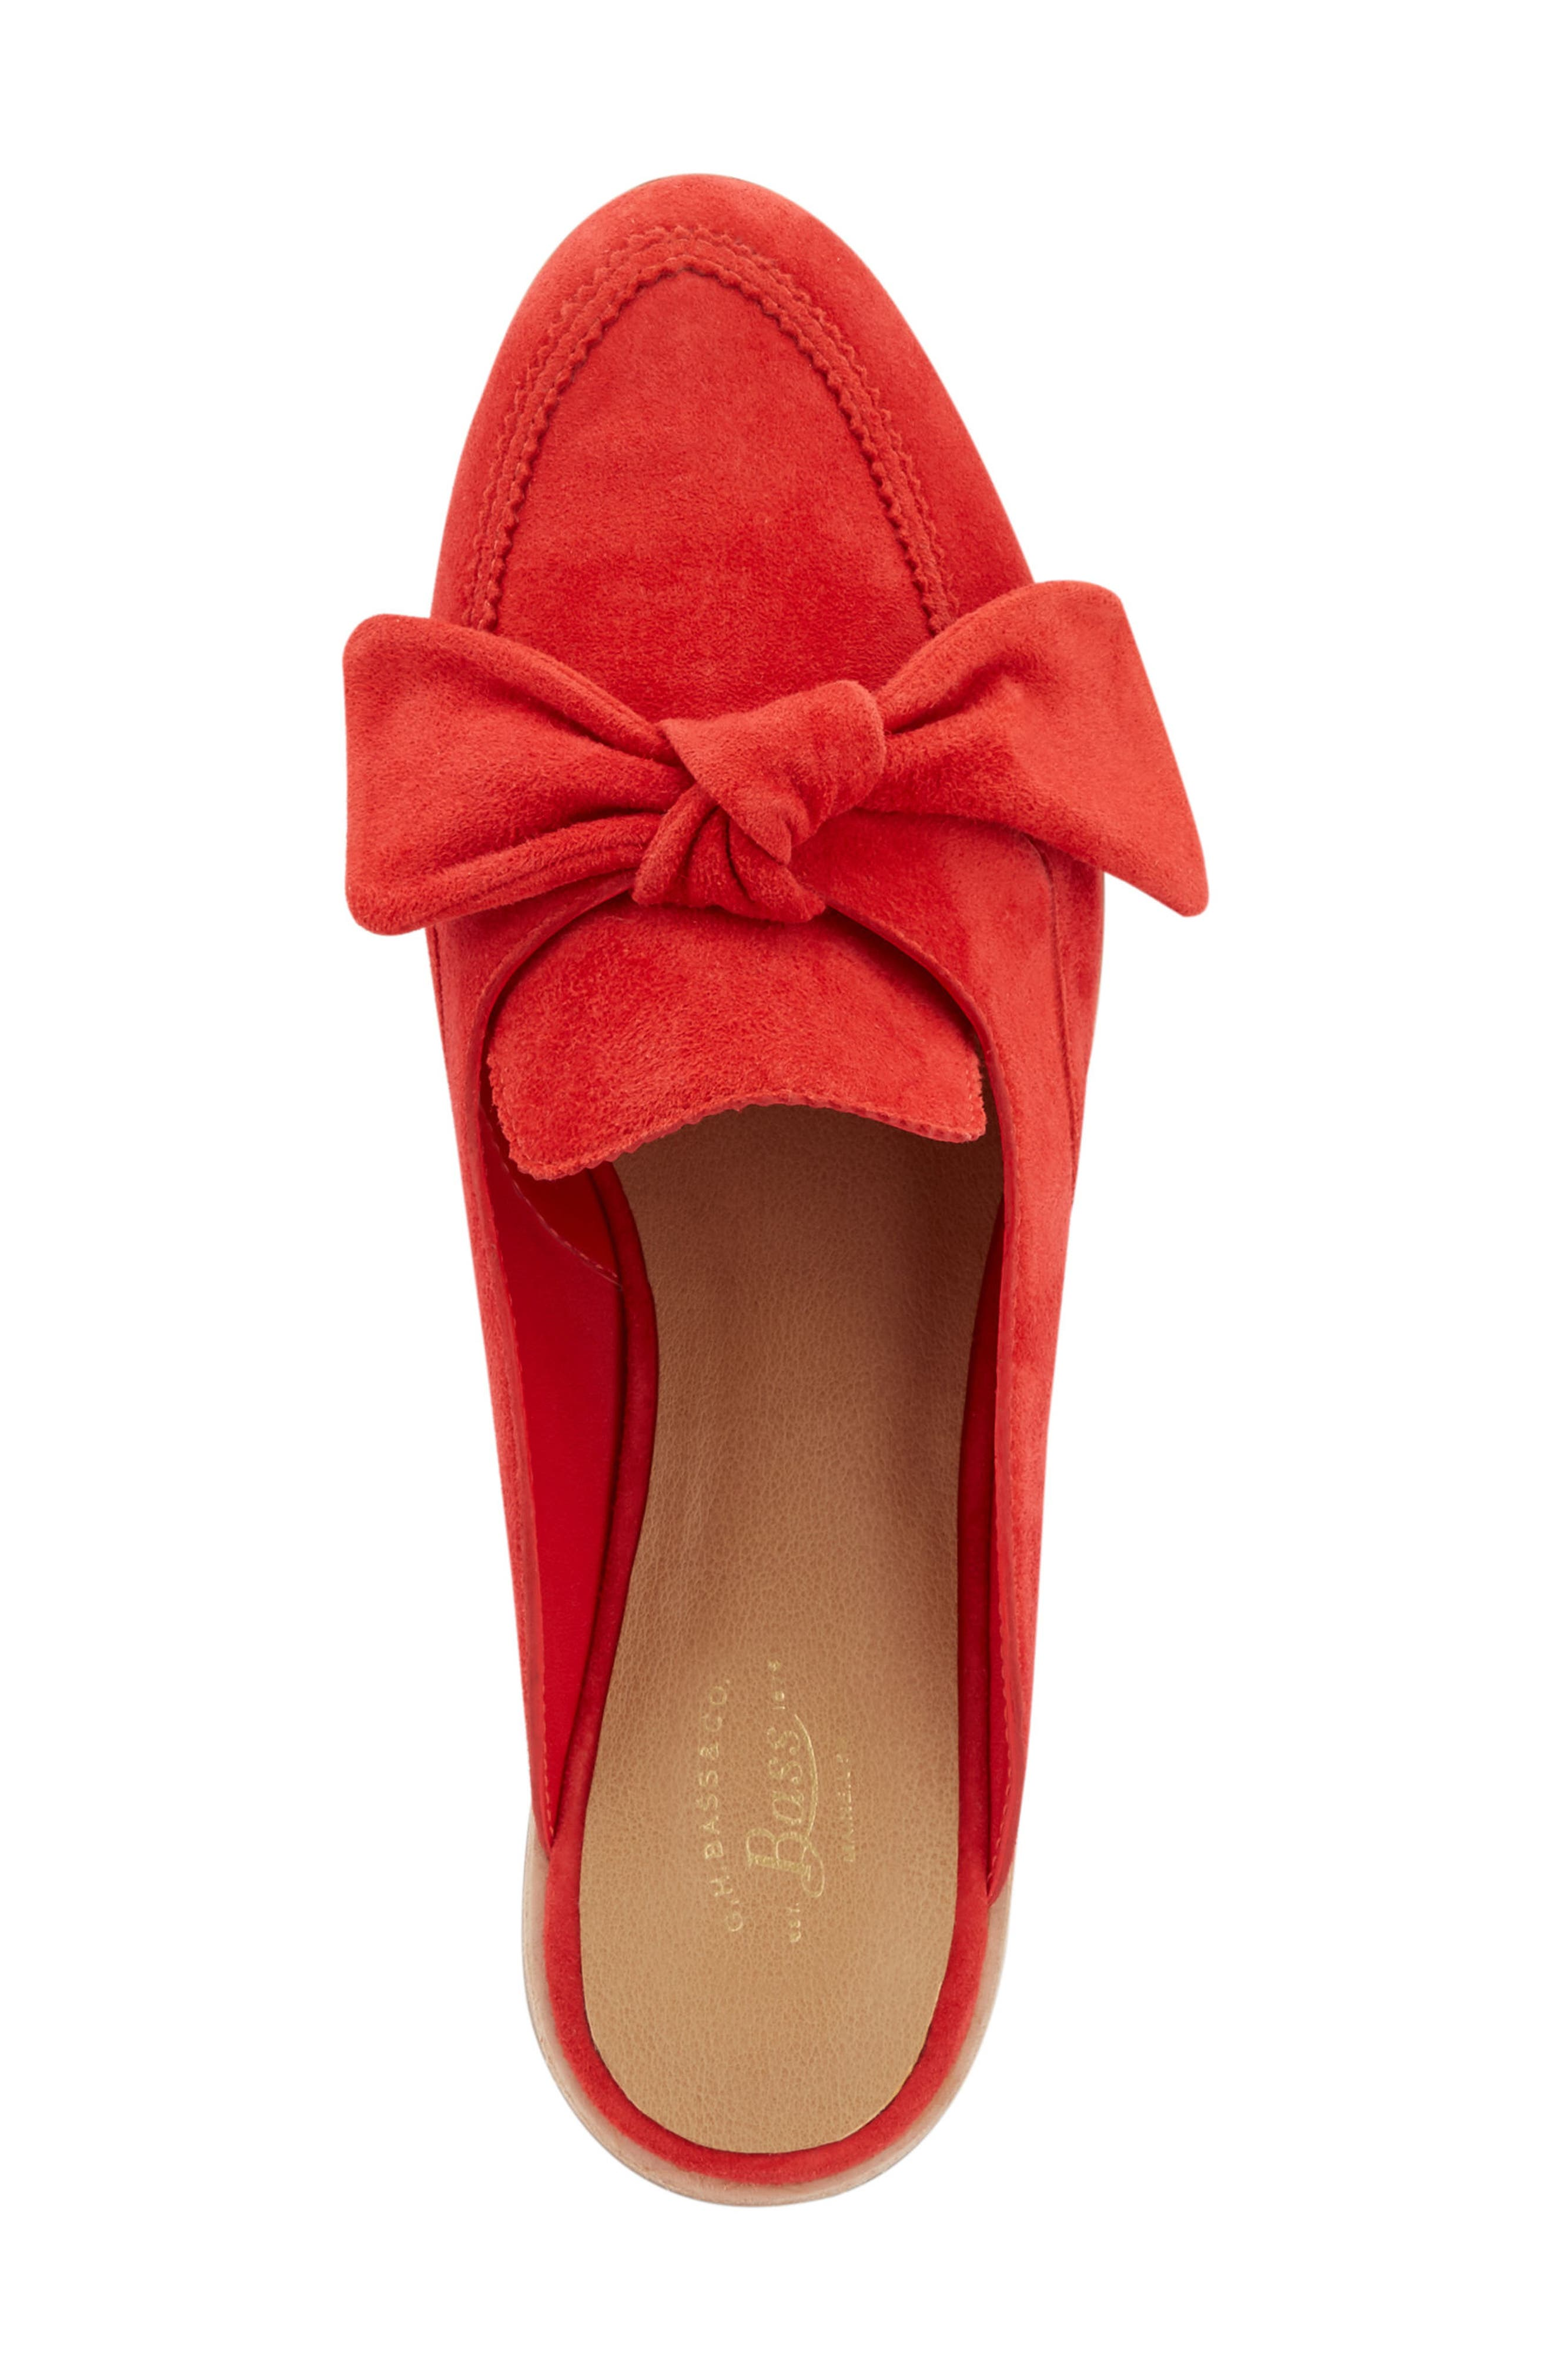 Ebbie Bow Mule,                             Alternate thumbnail 5, color,                             Red Suede